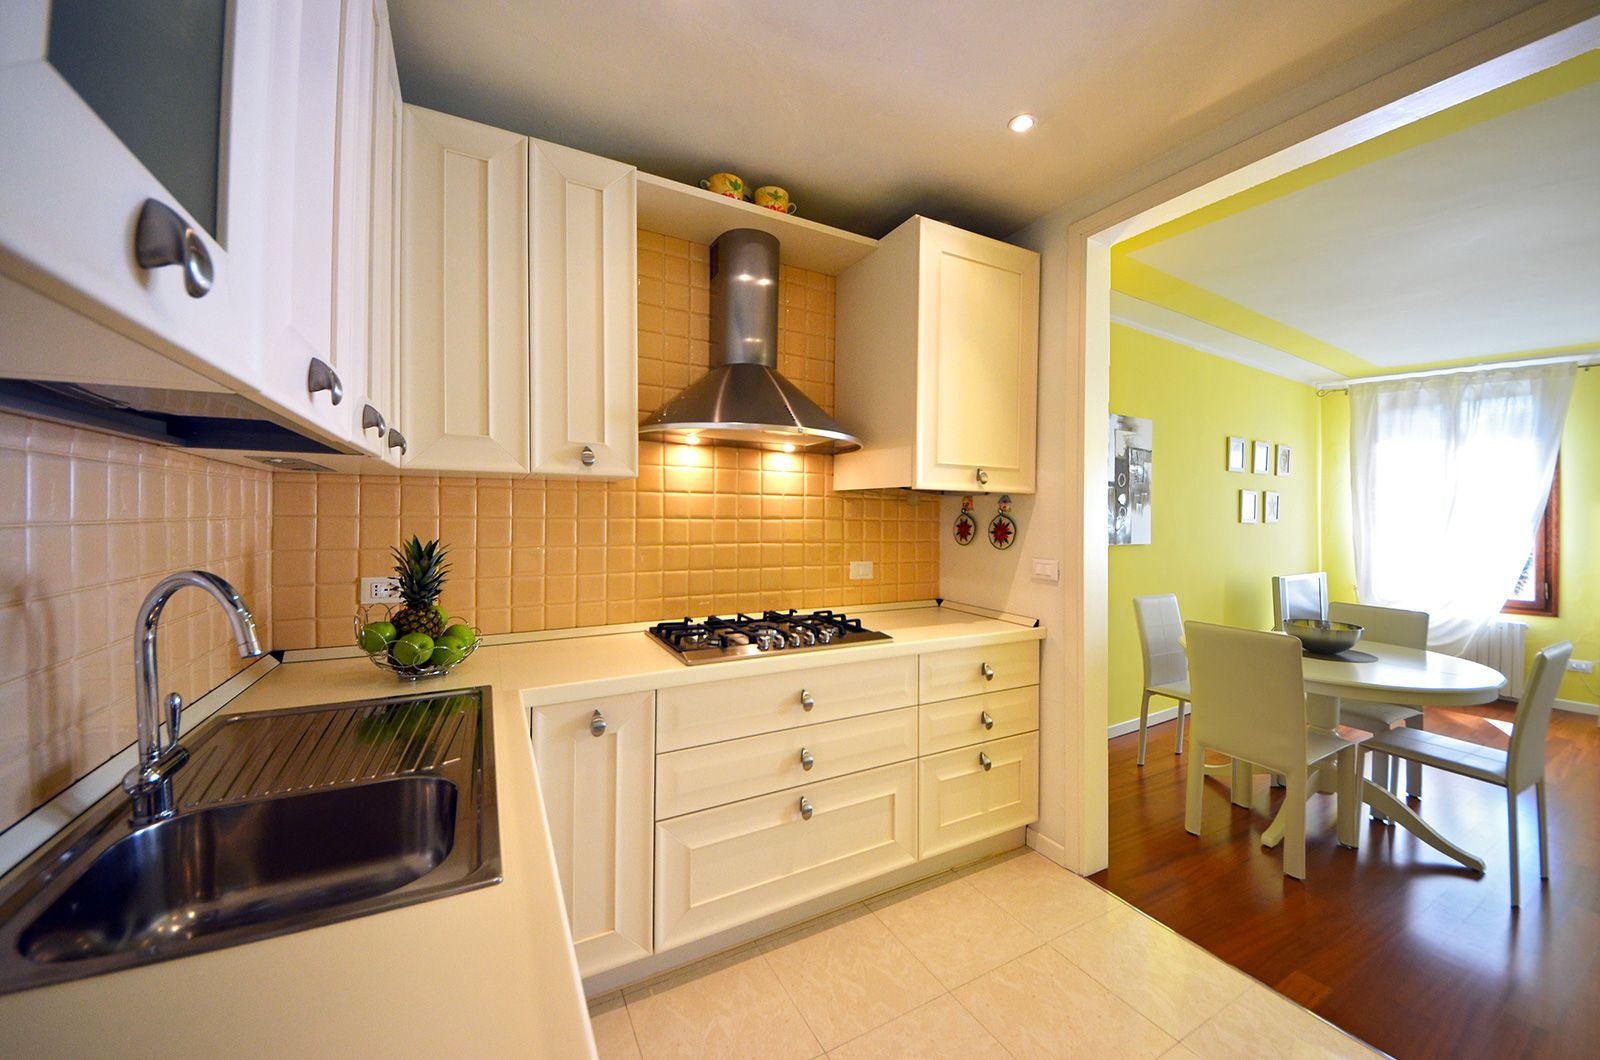 full optionals kitchen, spacious and well equipped